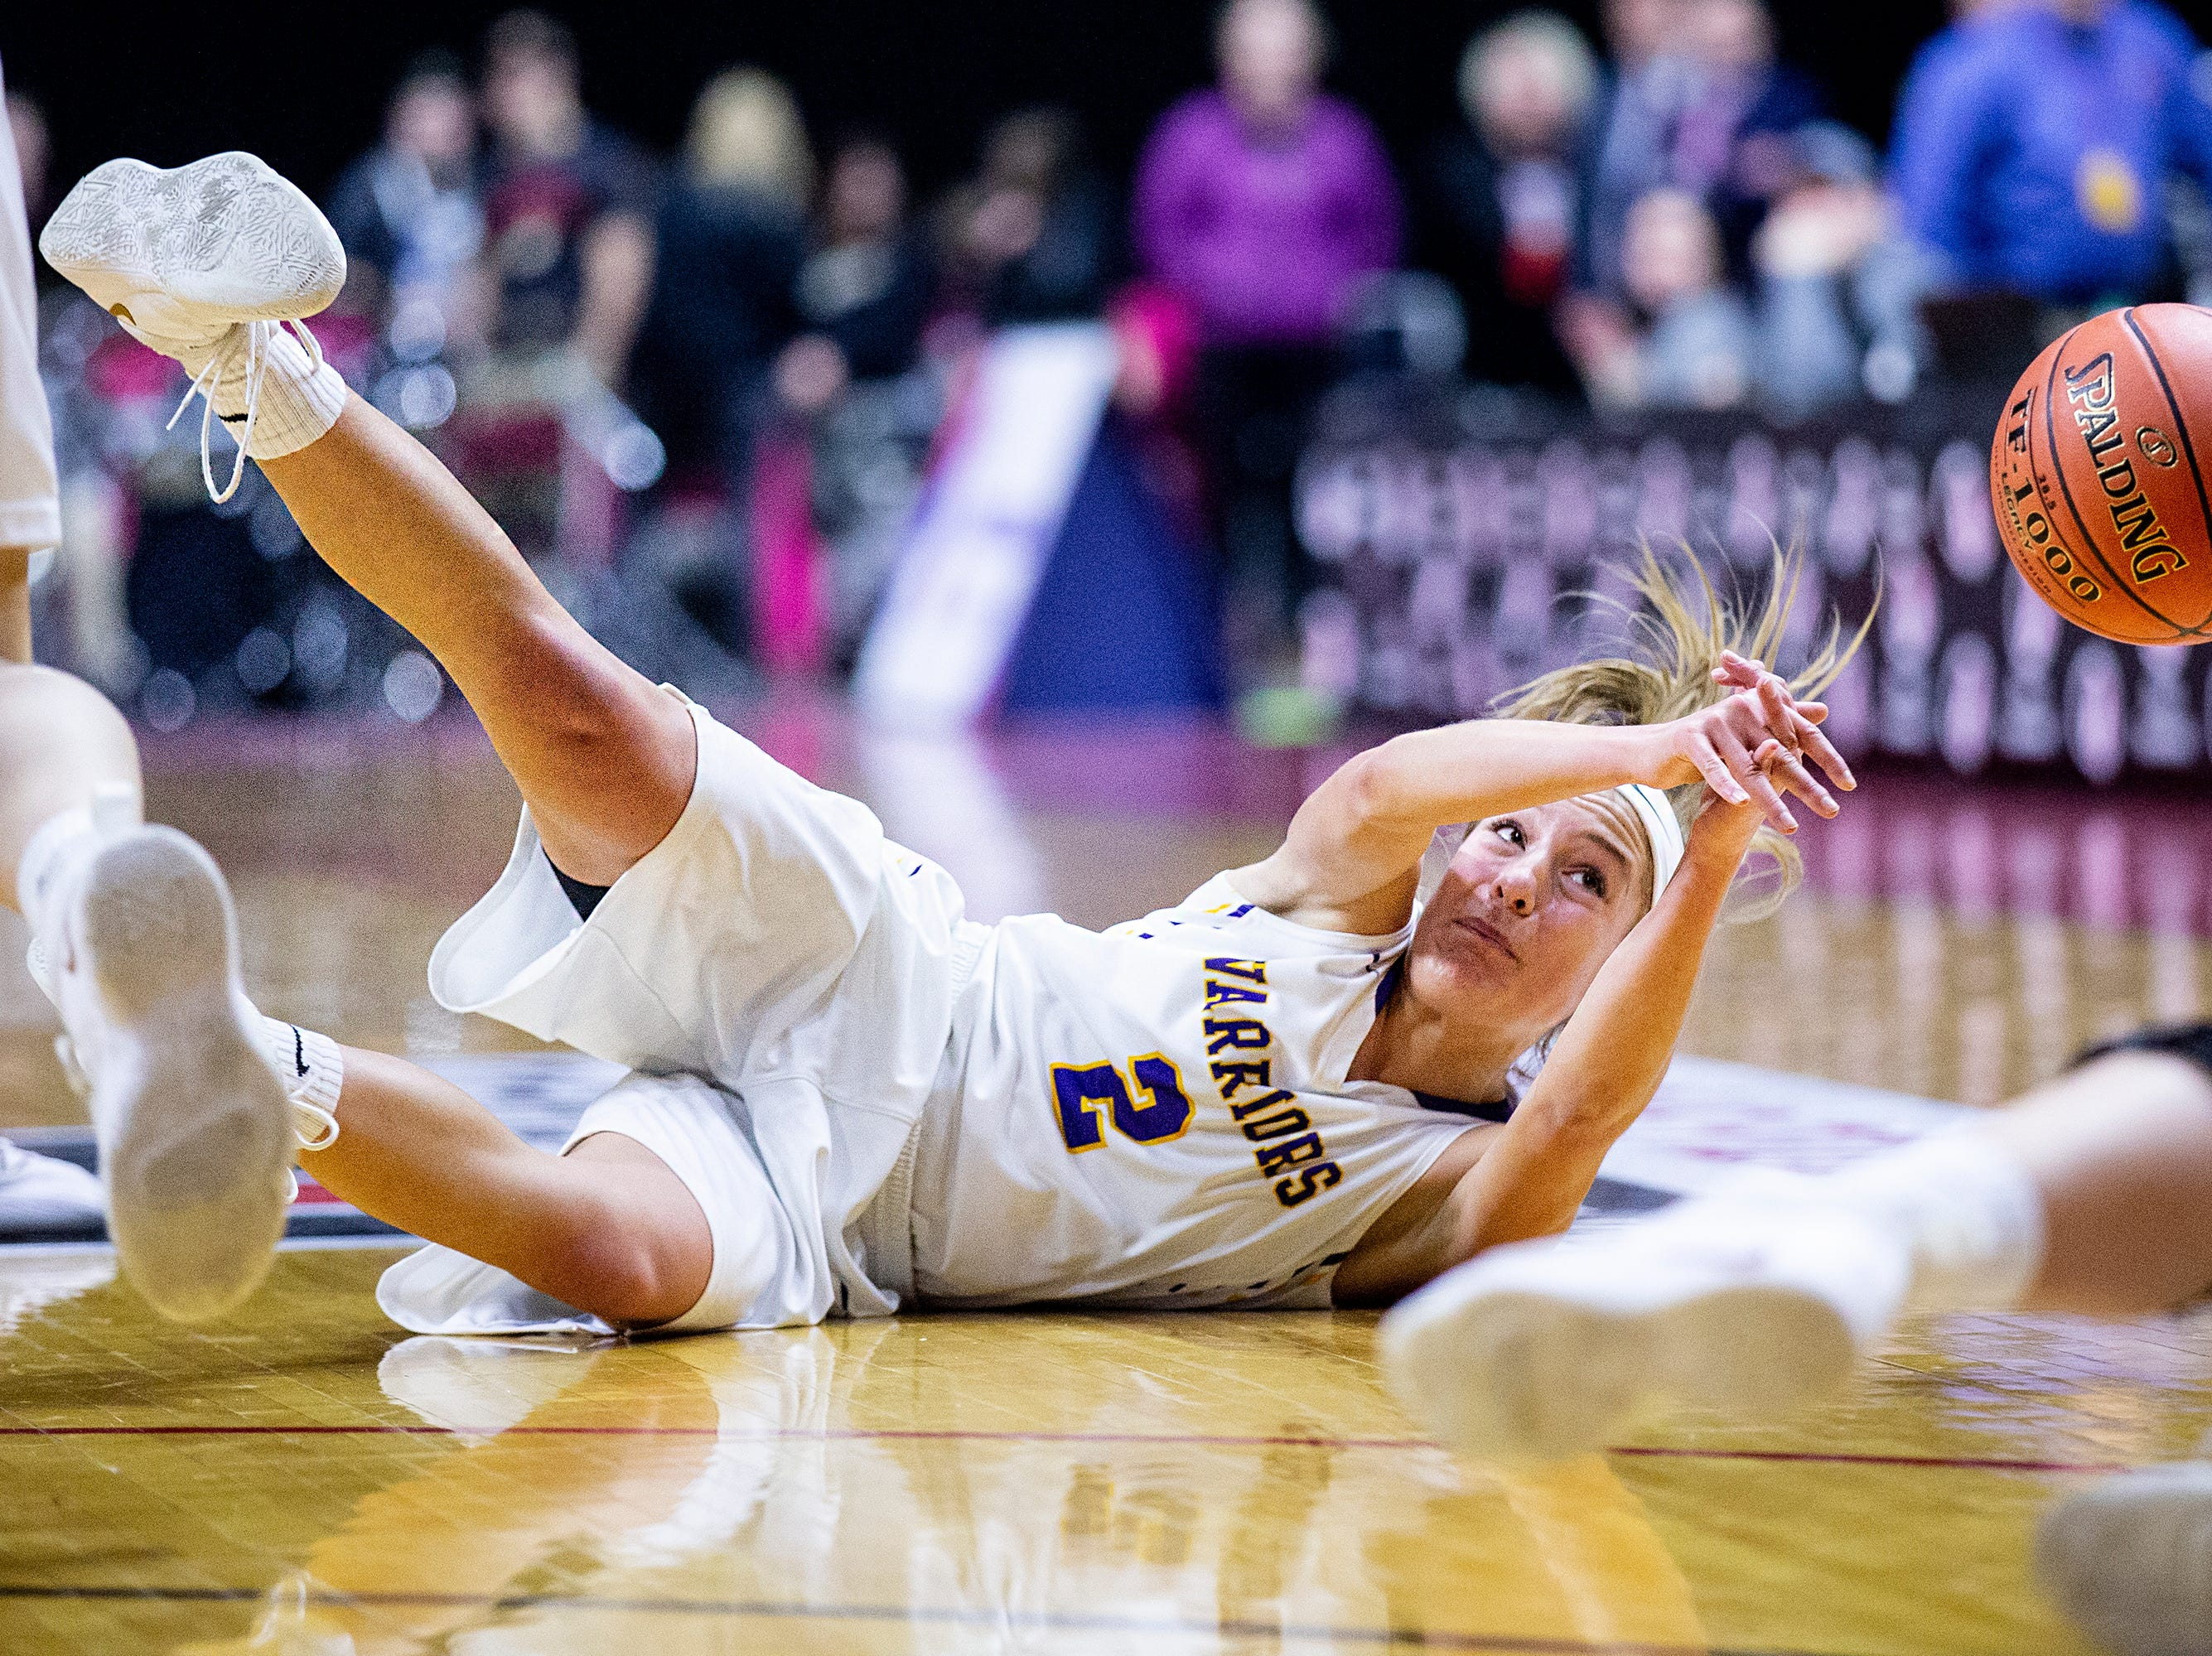 Waukee's Lindsey Kelderman tries to hold on to the ball during the Class 5A Iowa girls' state basketball tournament quarterfinal between Dowling Catholic and Waukee on Monday, Feb. 25, 2019, in Wells Fargo Arena.